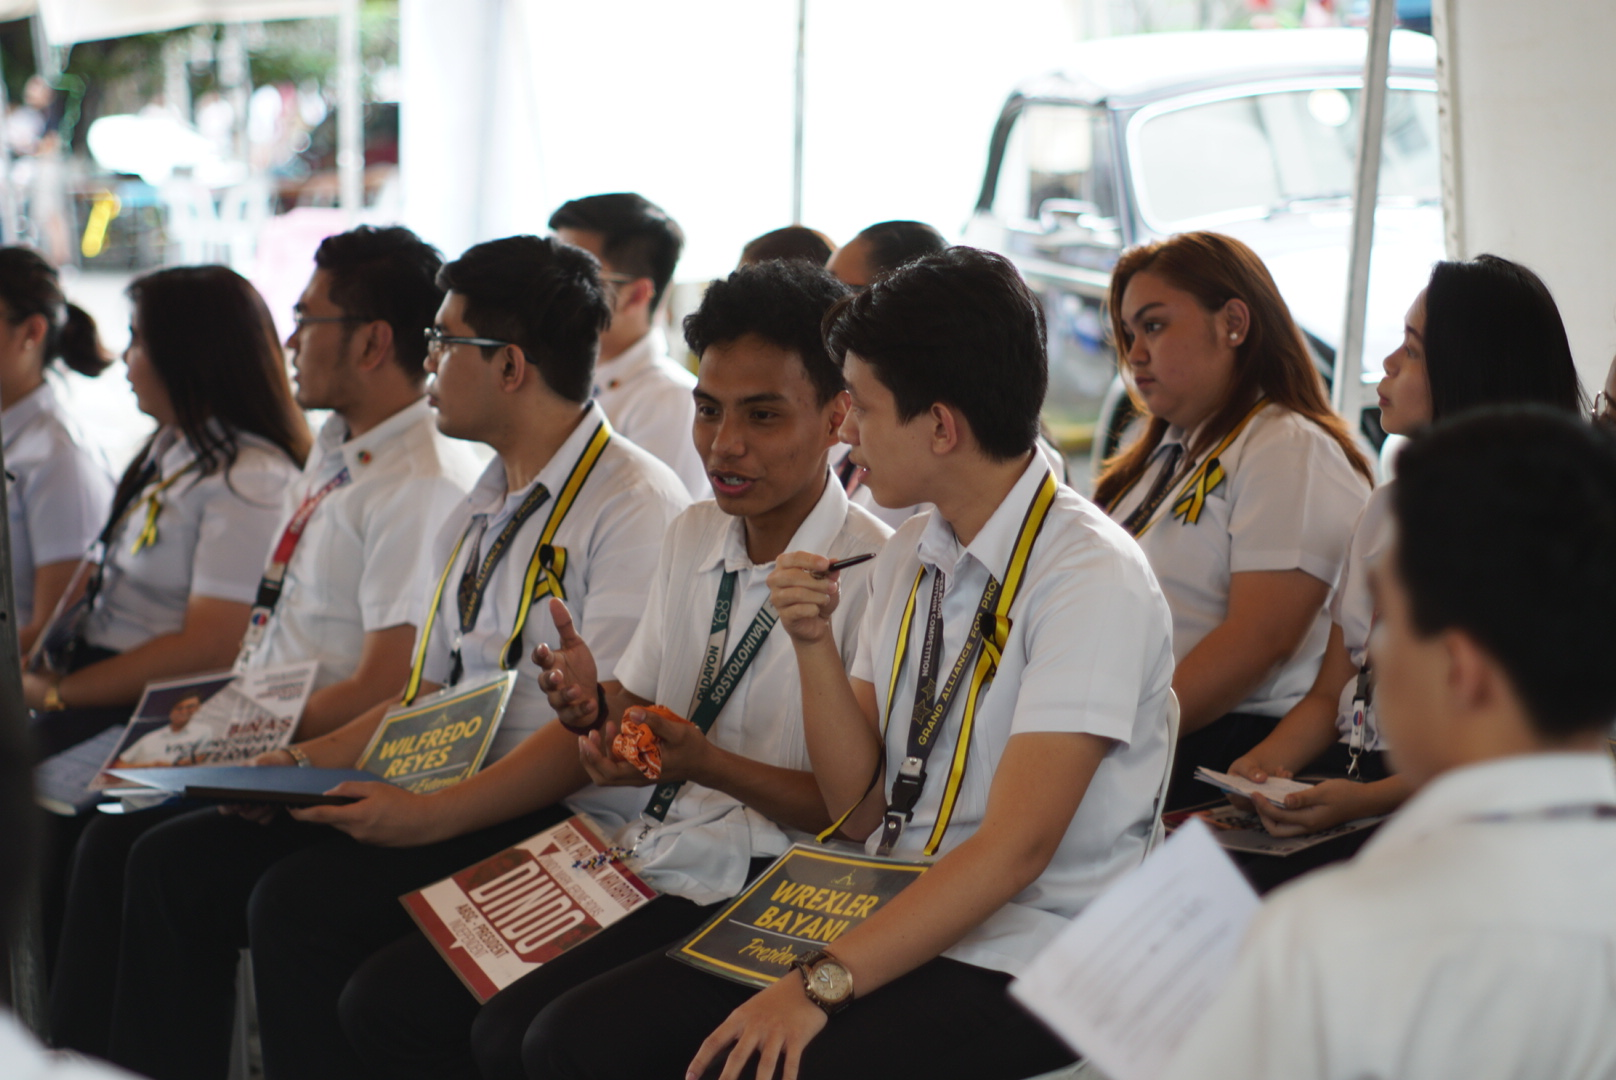 ABSC bets vow to work with Artlets, address gender-based issues